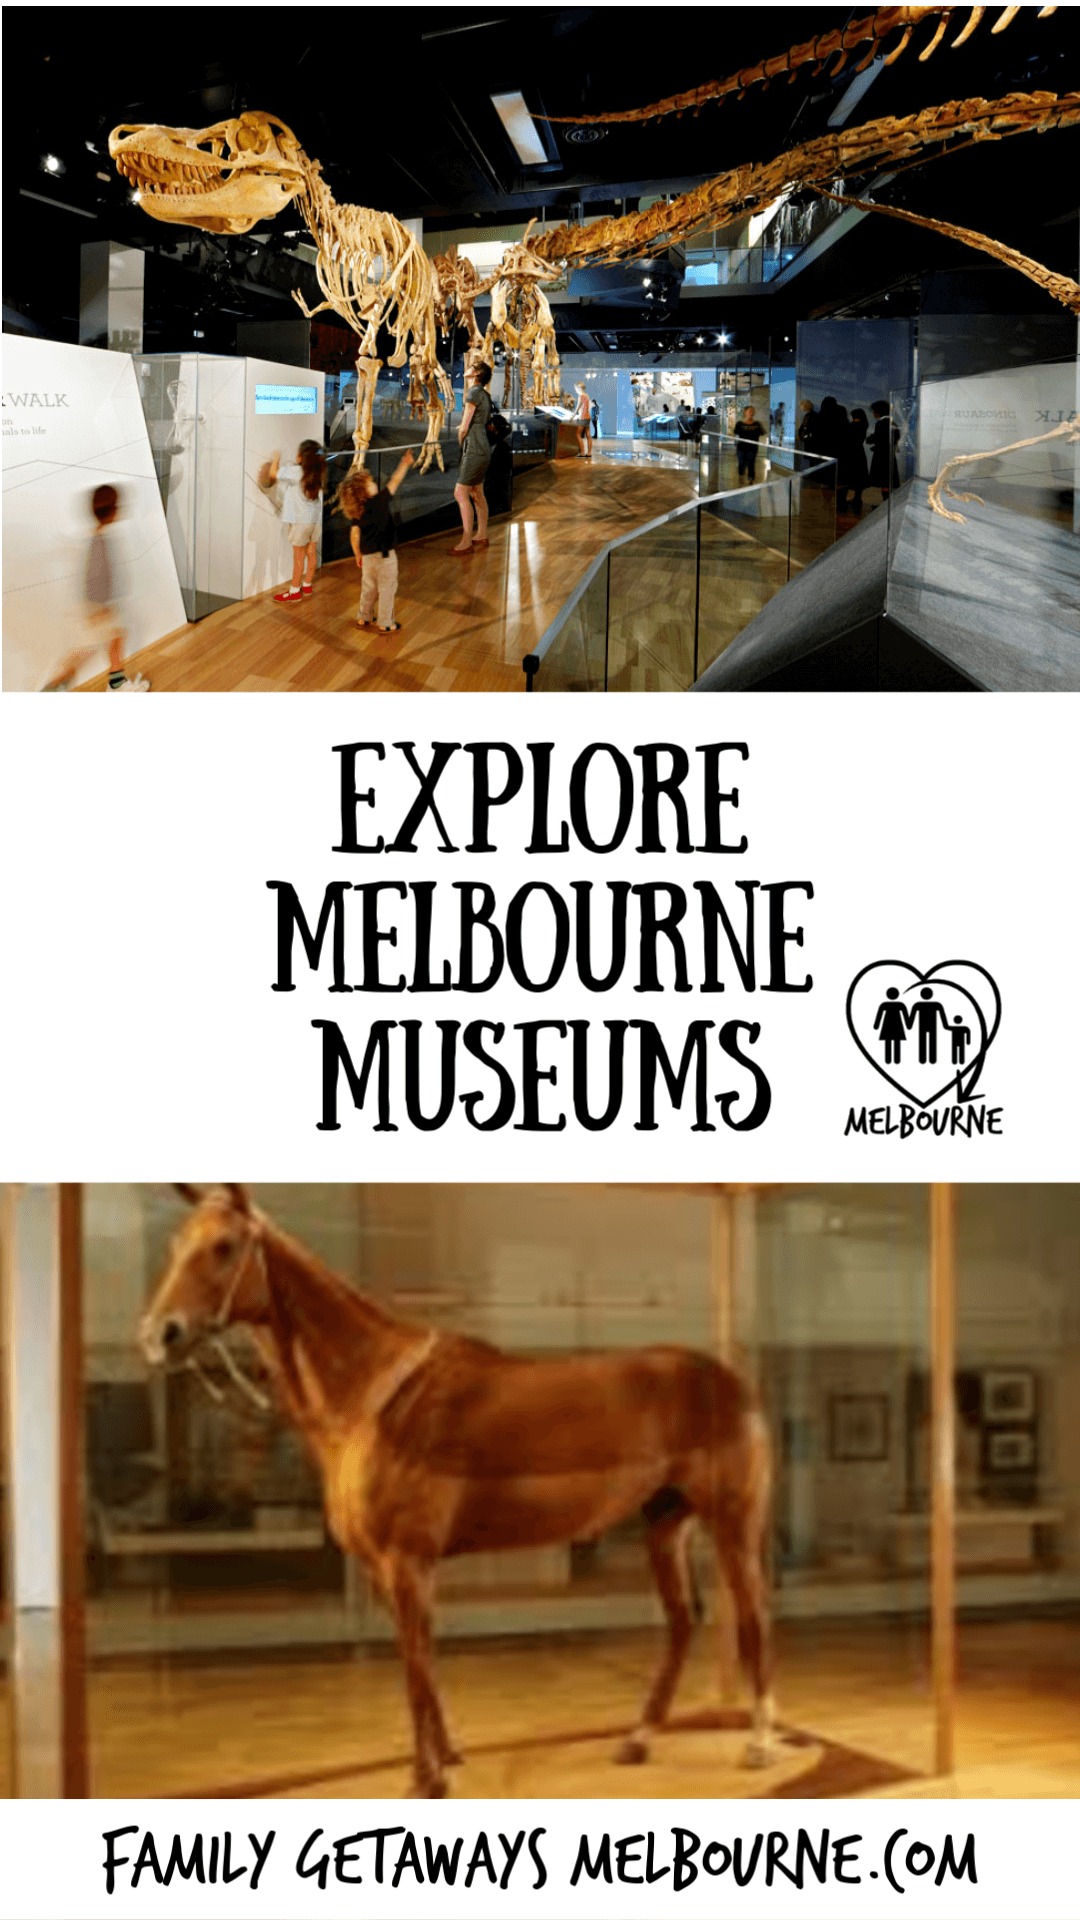 image to pin to pinterest for information on melbourne's museums